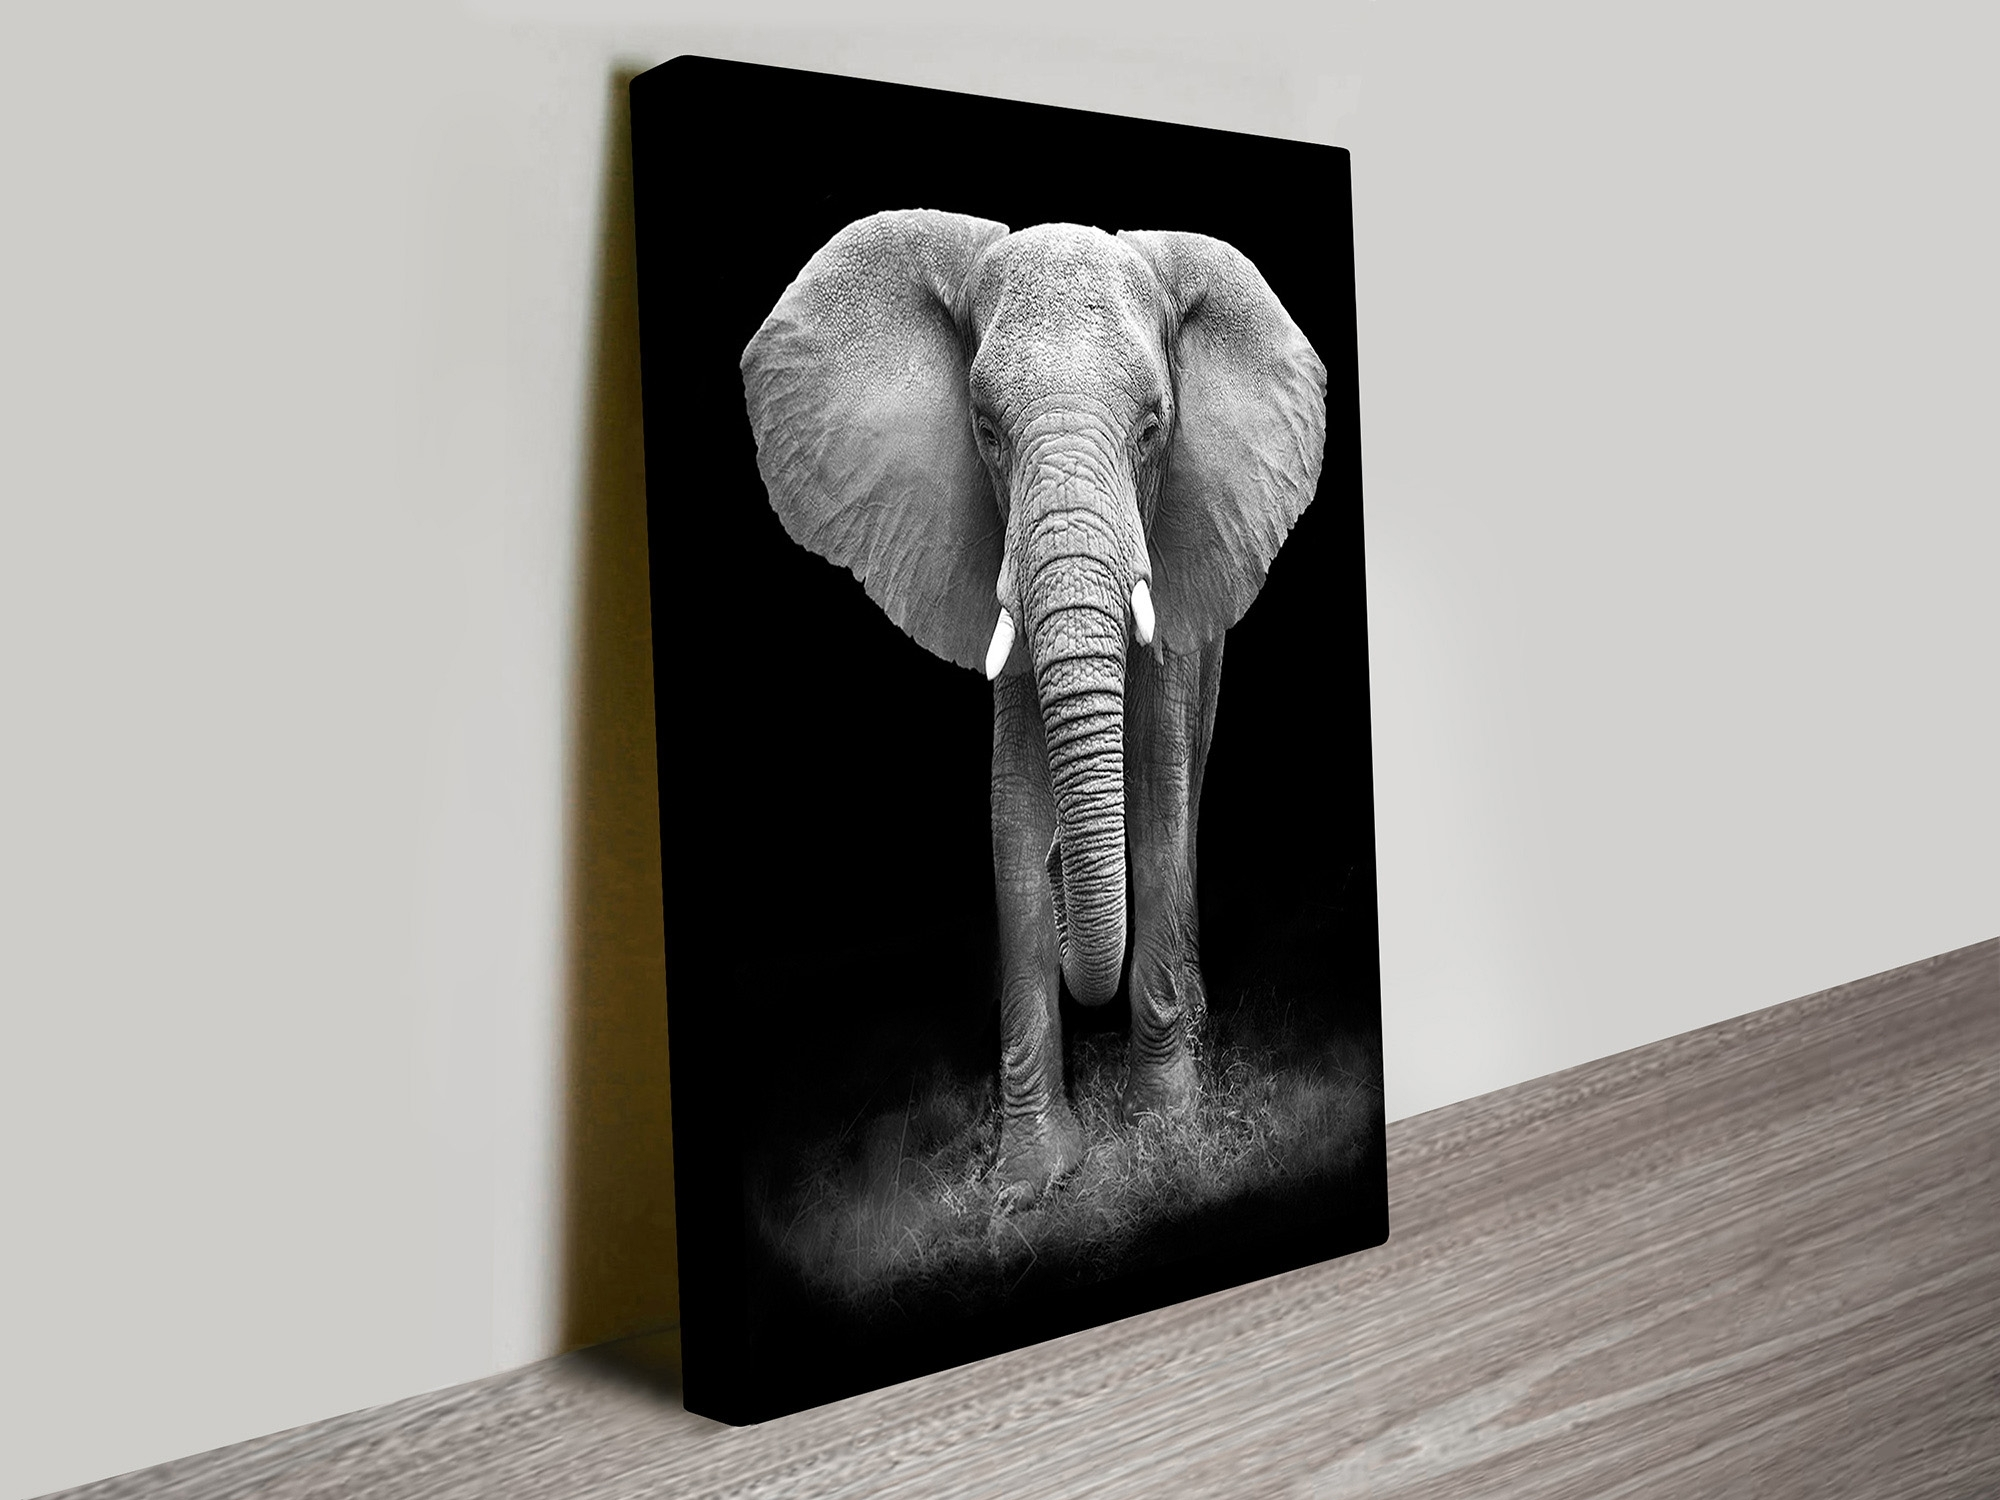 Gentle Giant Elephant Canvas Wall Art – Blue Horizon Prints Inside Current Elephant Canvas Wall Art (View 10 of 15)